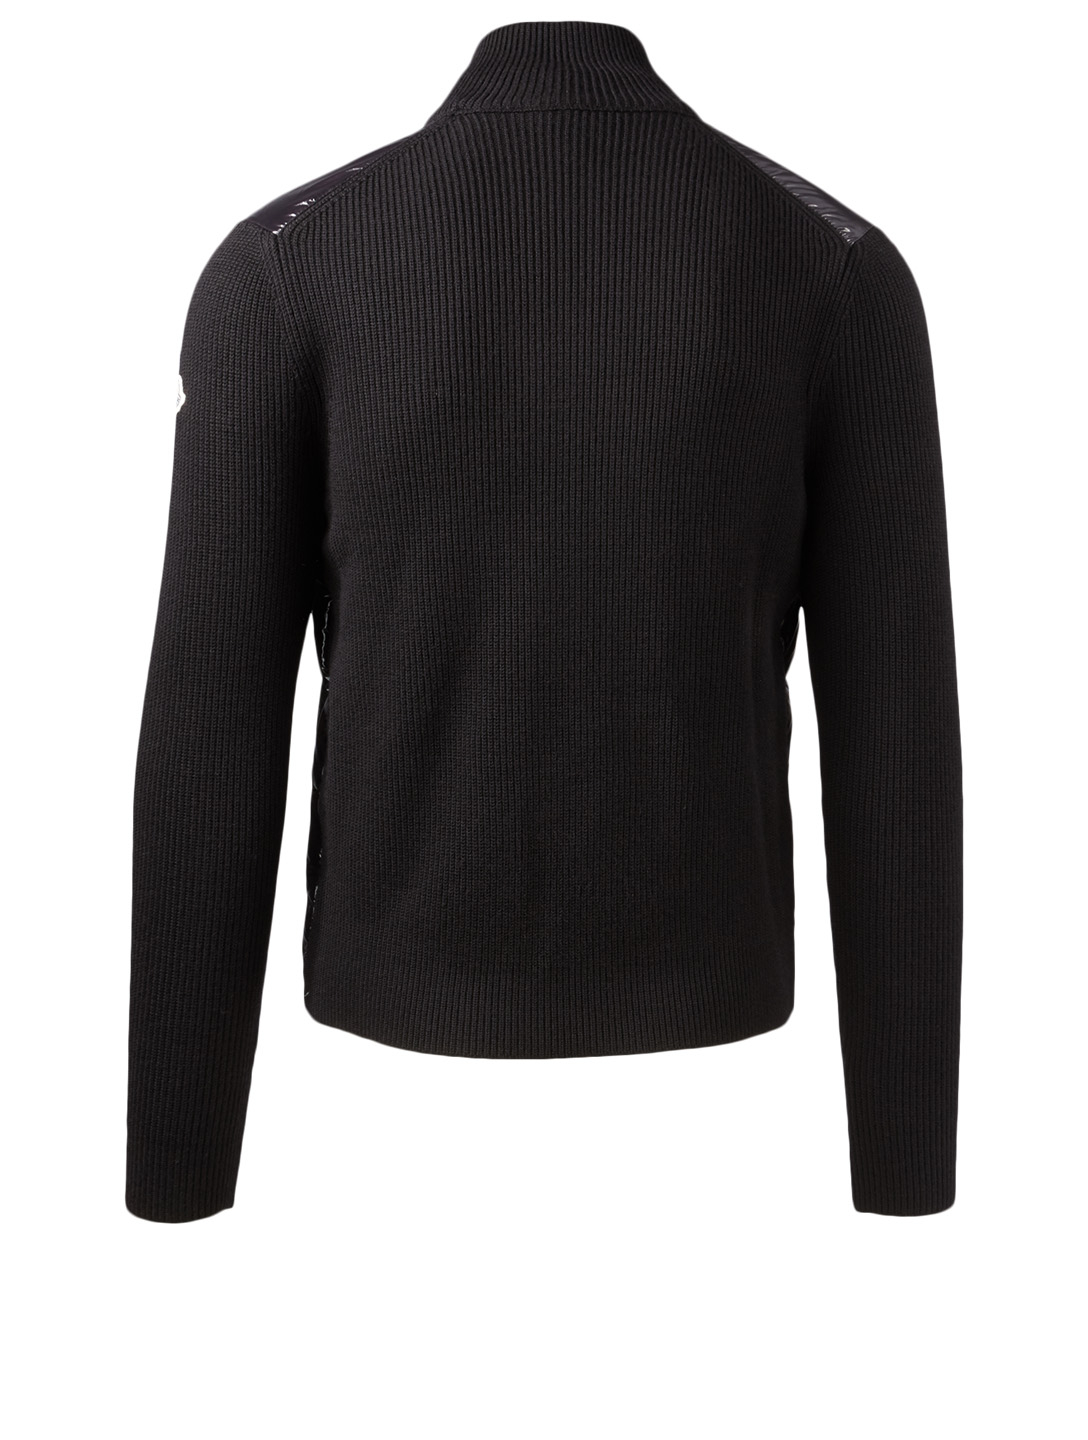 MONCLER Wool Down Cardigan Men's Black